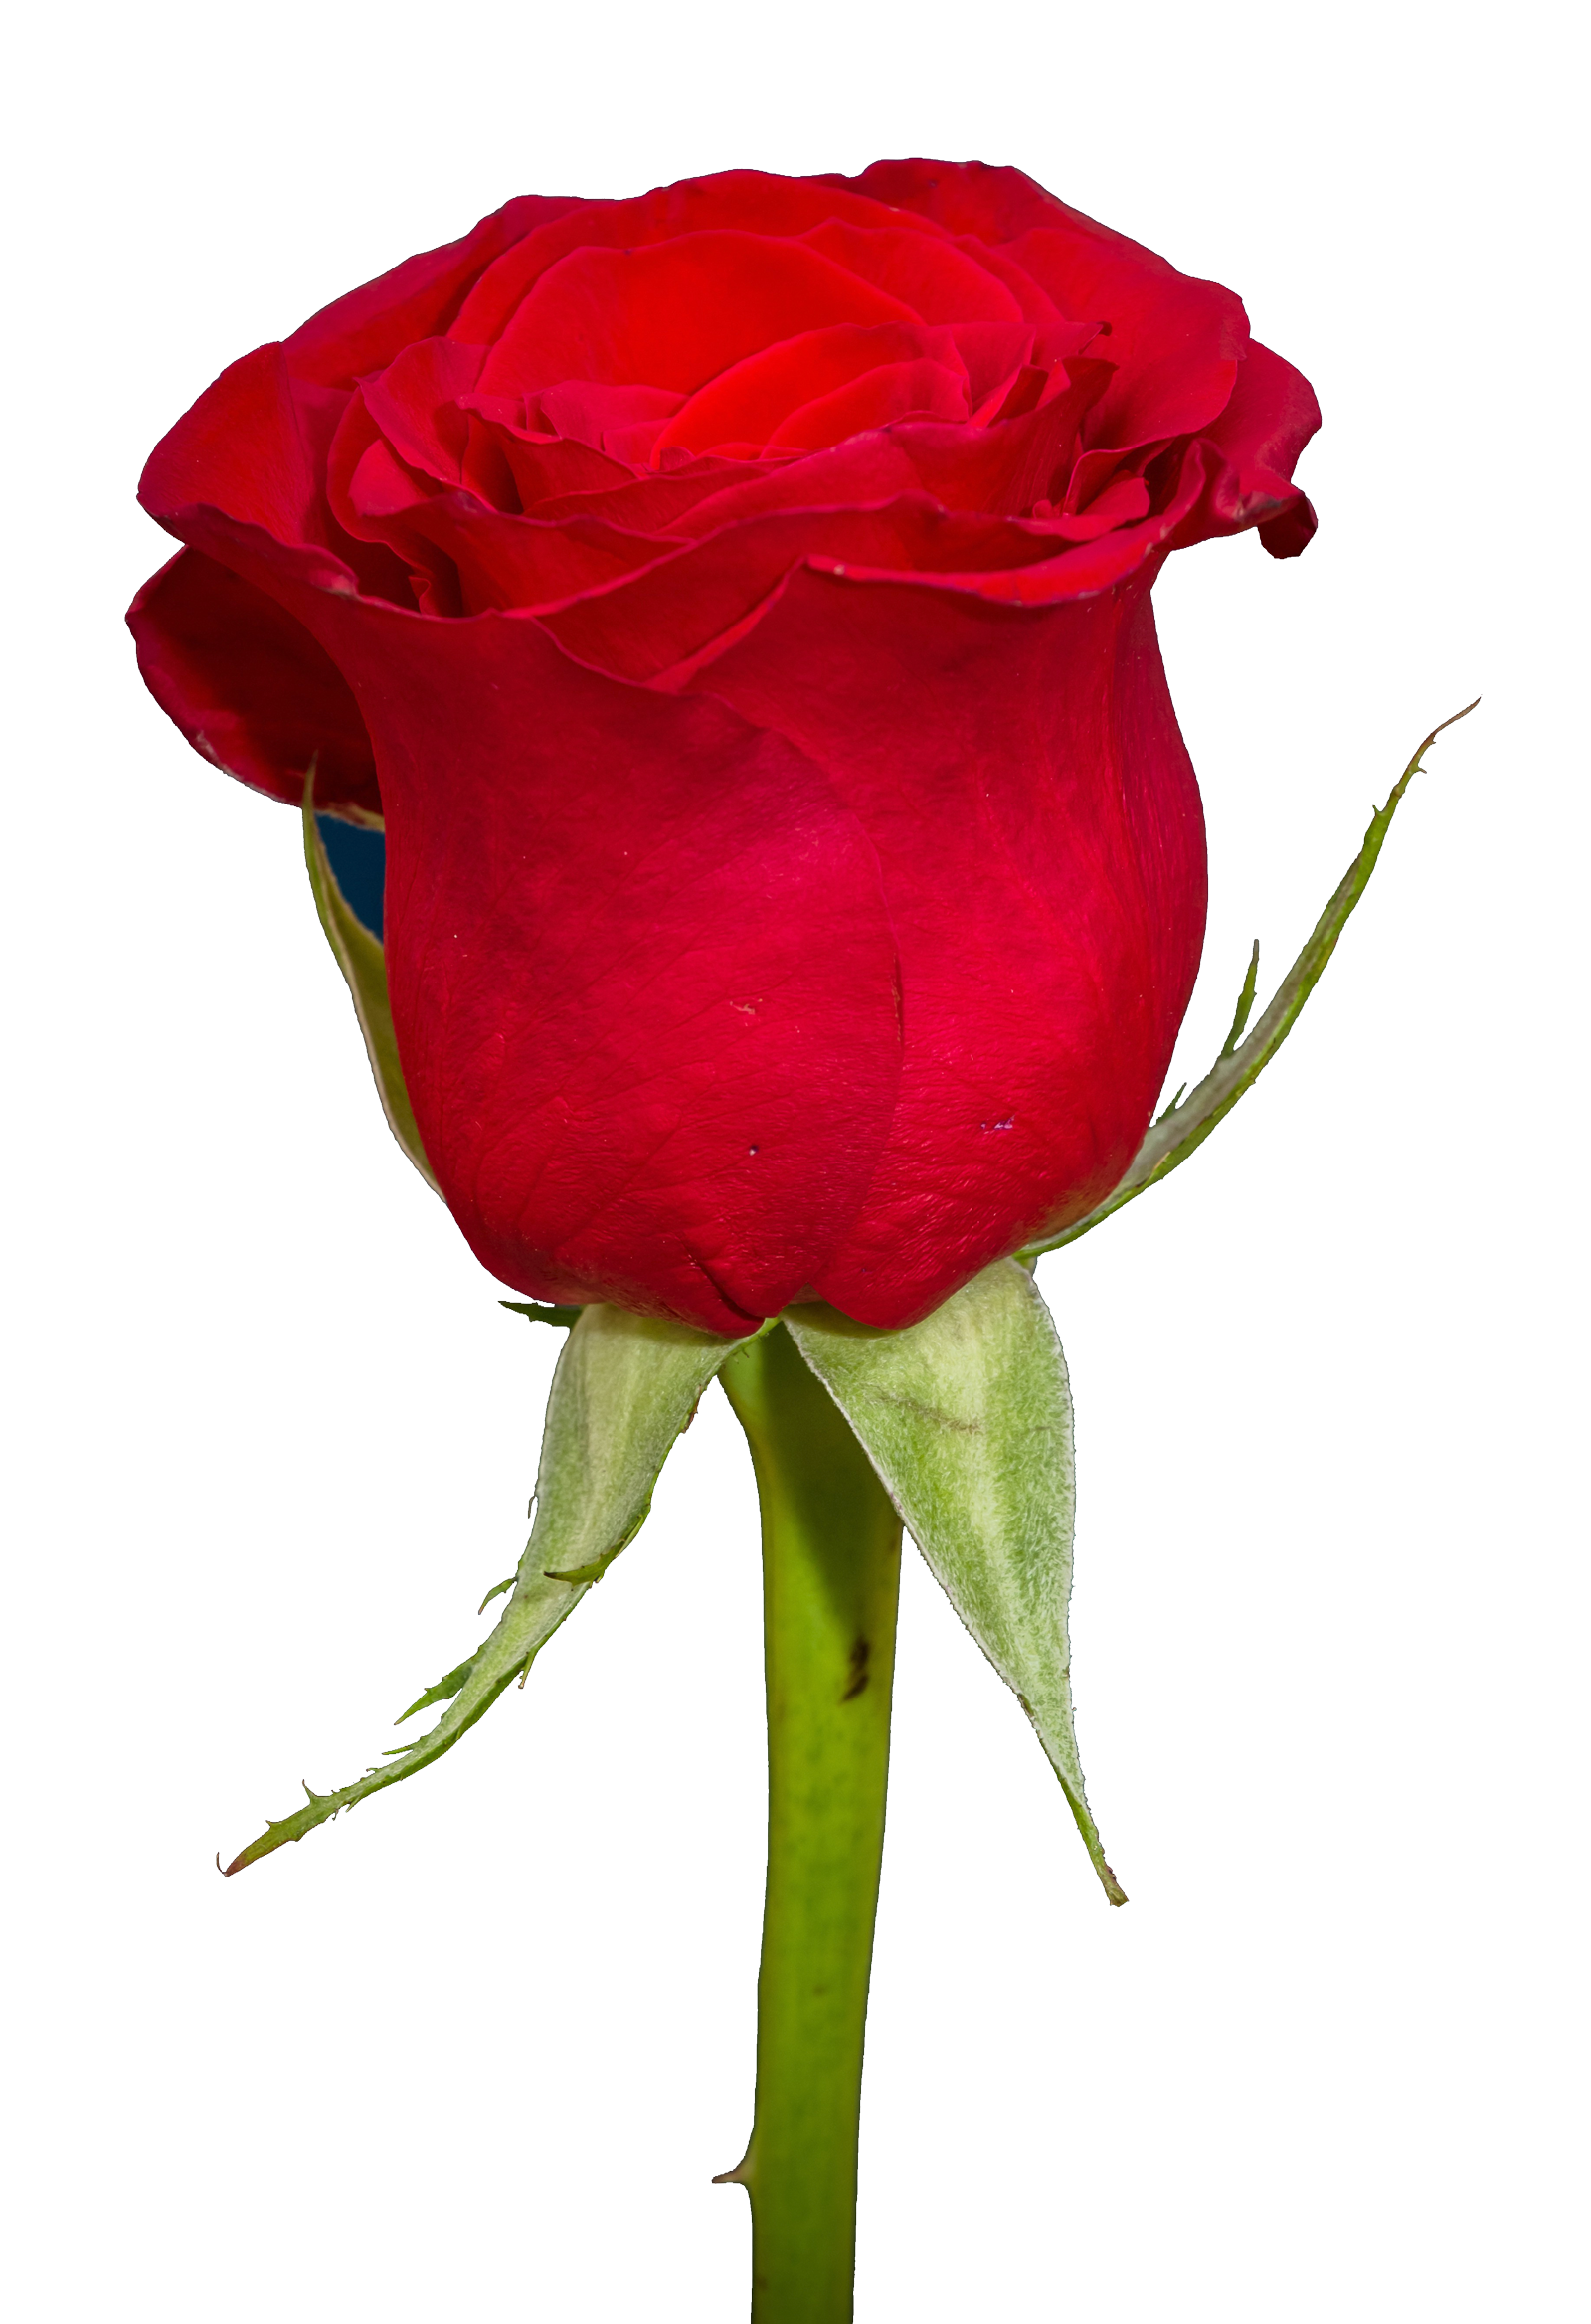 Rose PNG Transparent Image - Rose HD PNG